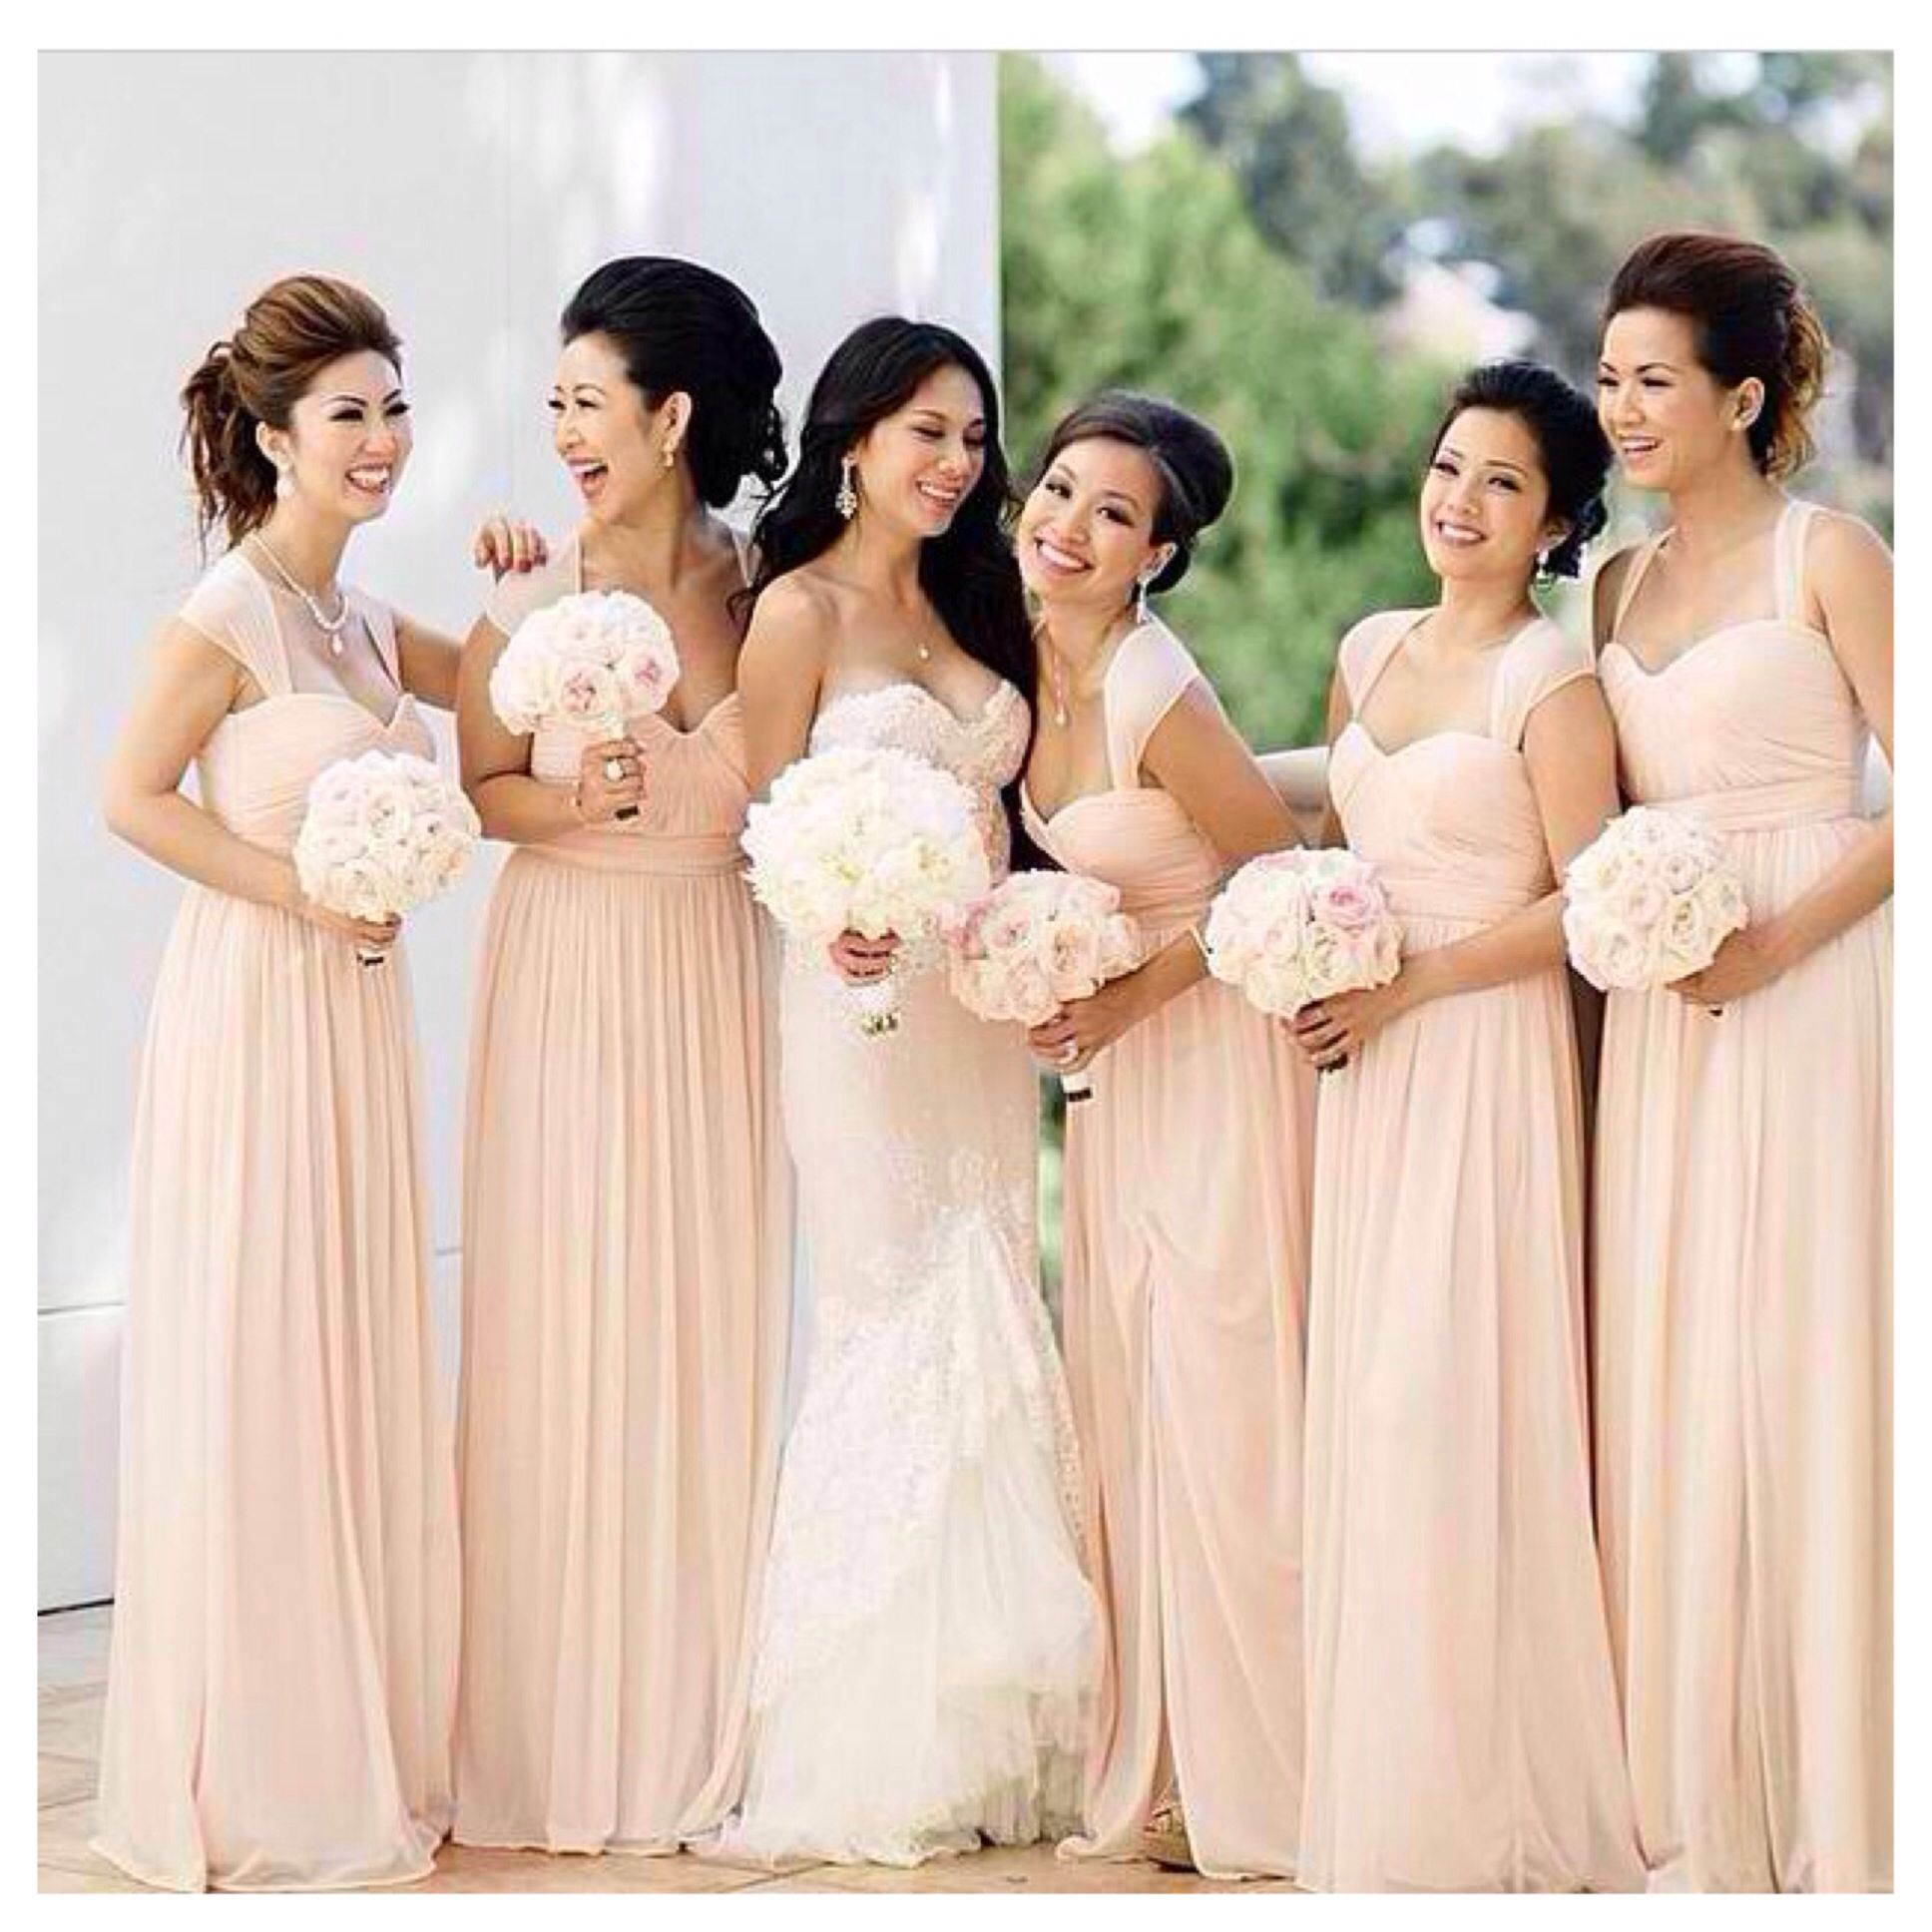 Wedding Entourage Gown Inspiration 1 Weddings Bridesmaid Dresses